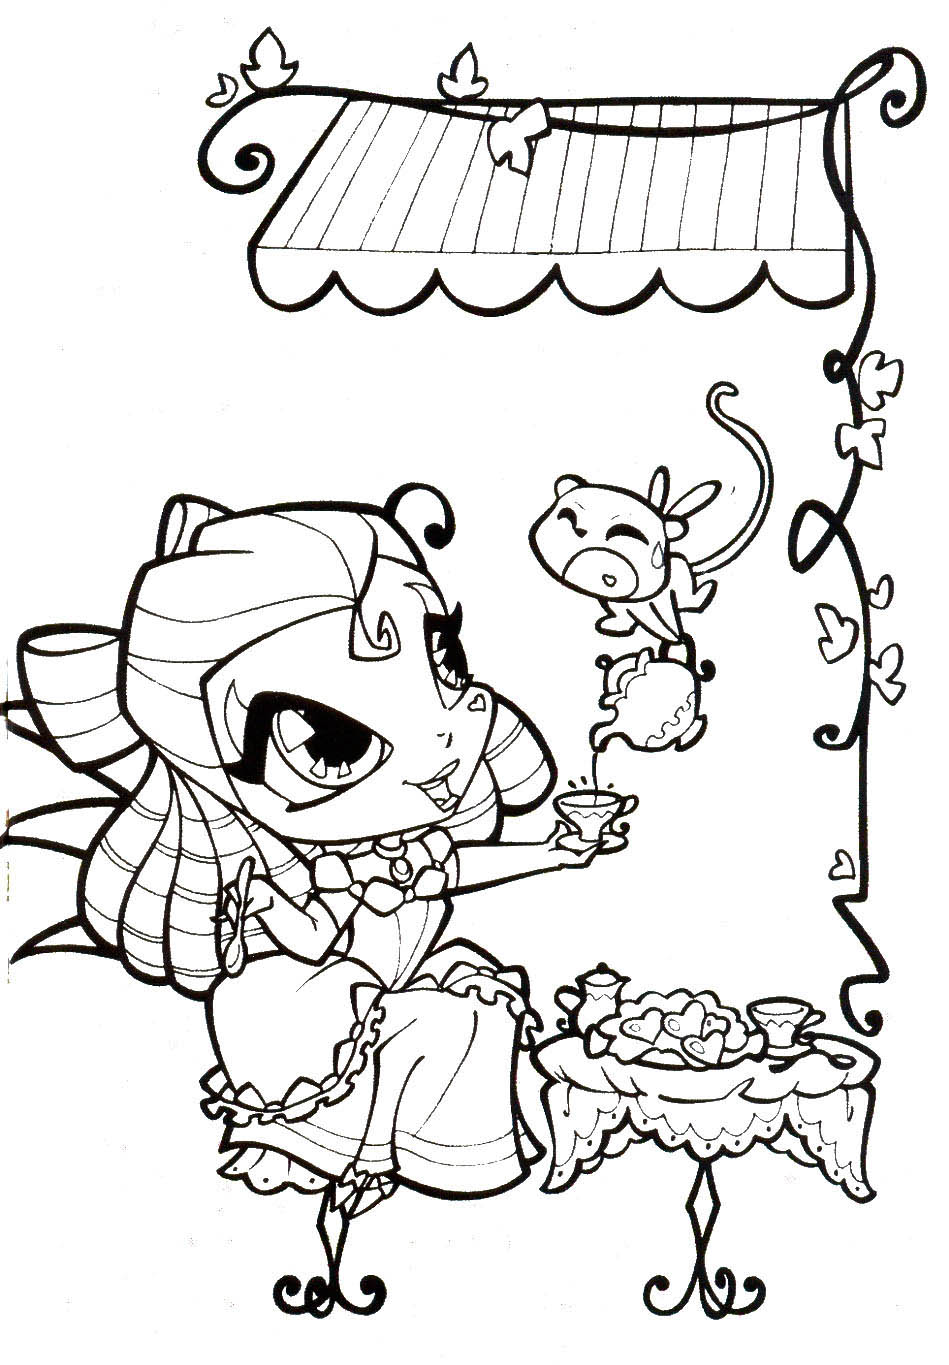 Winx Pixie coloring pages to download